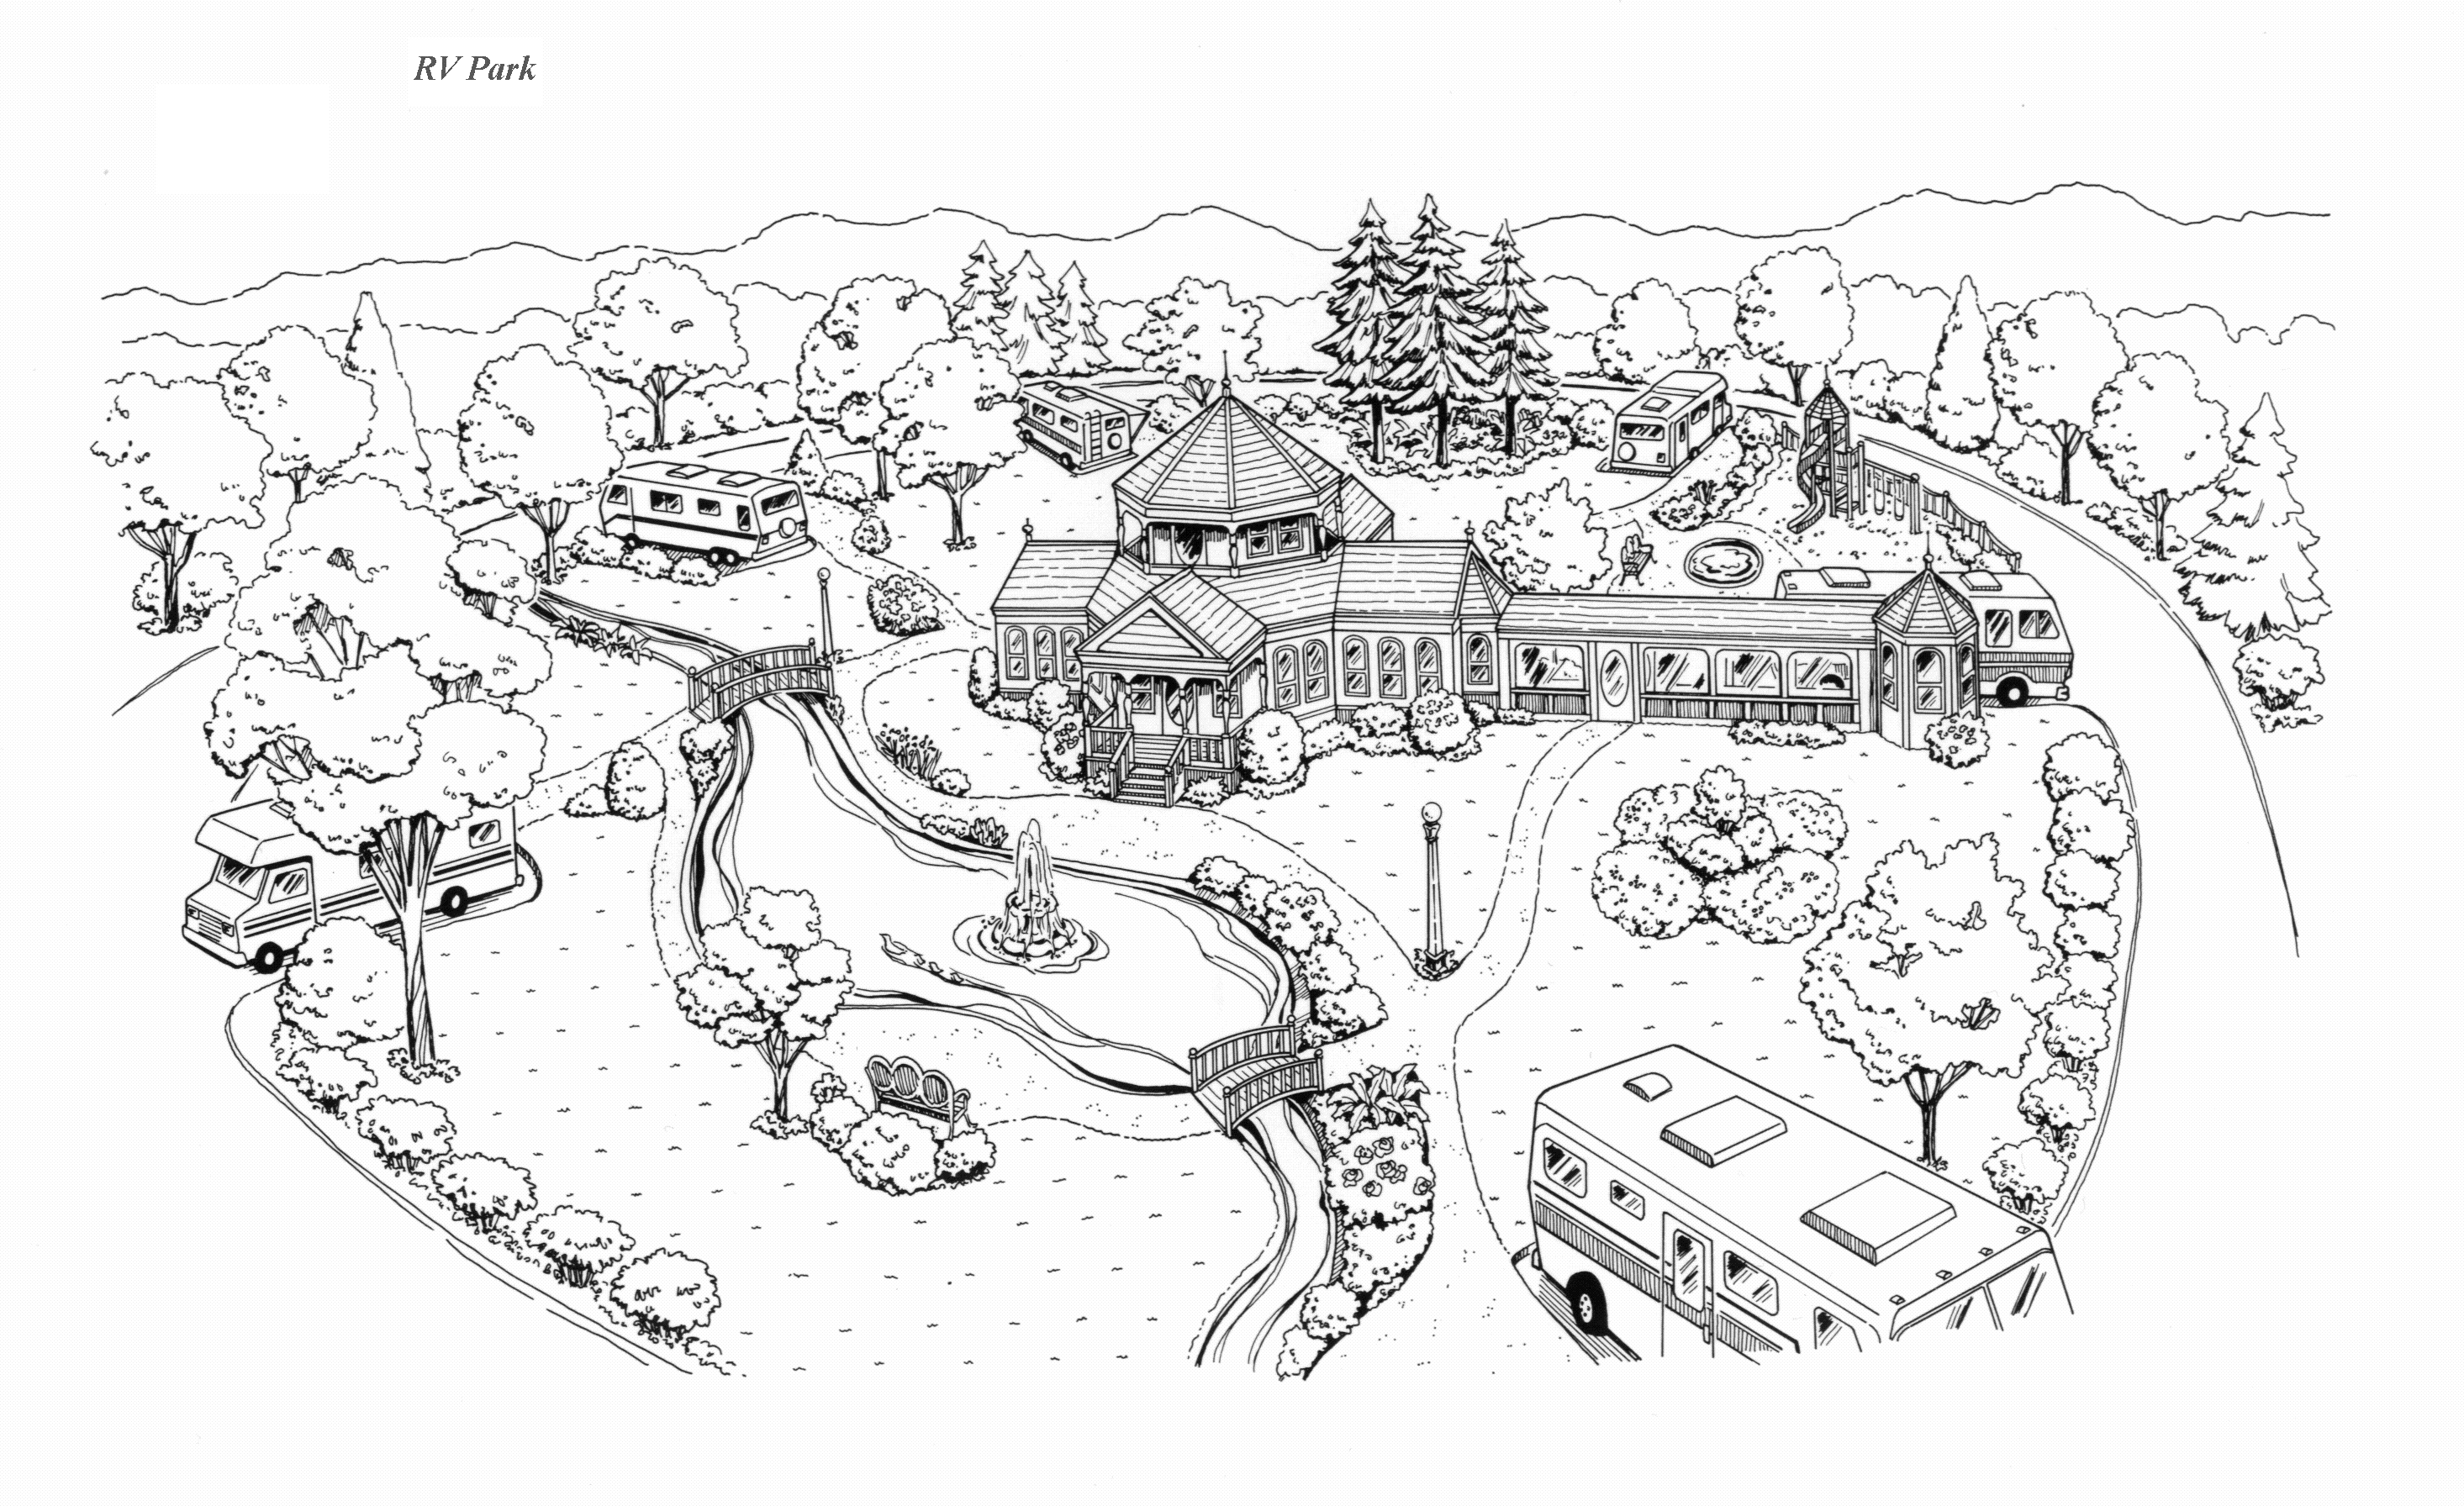 Designing An Rv Park @ misity64 :: 痞客邦